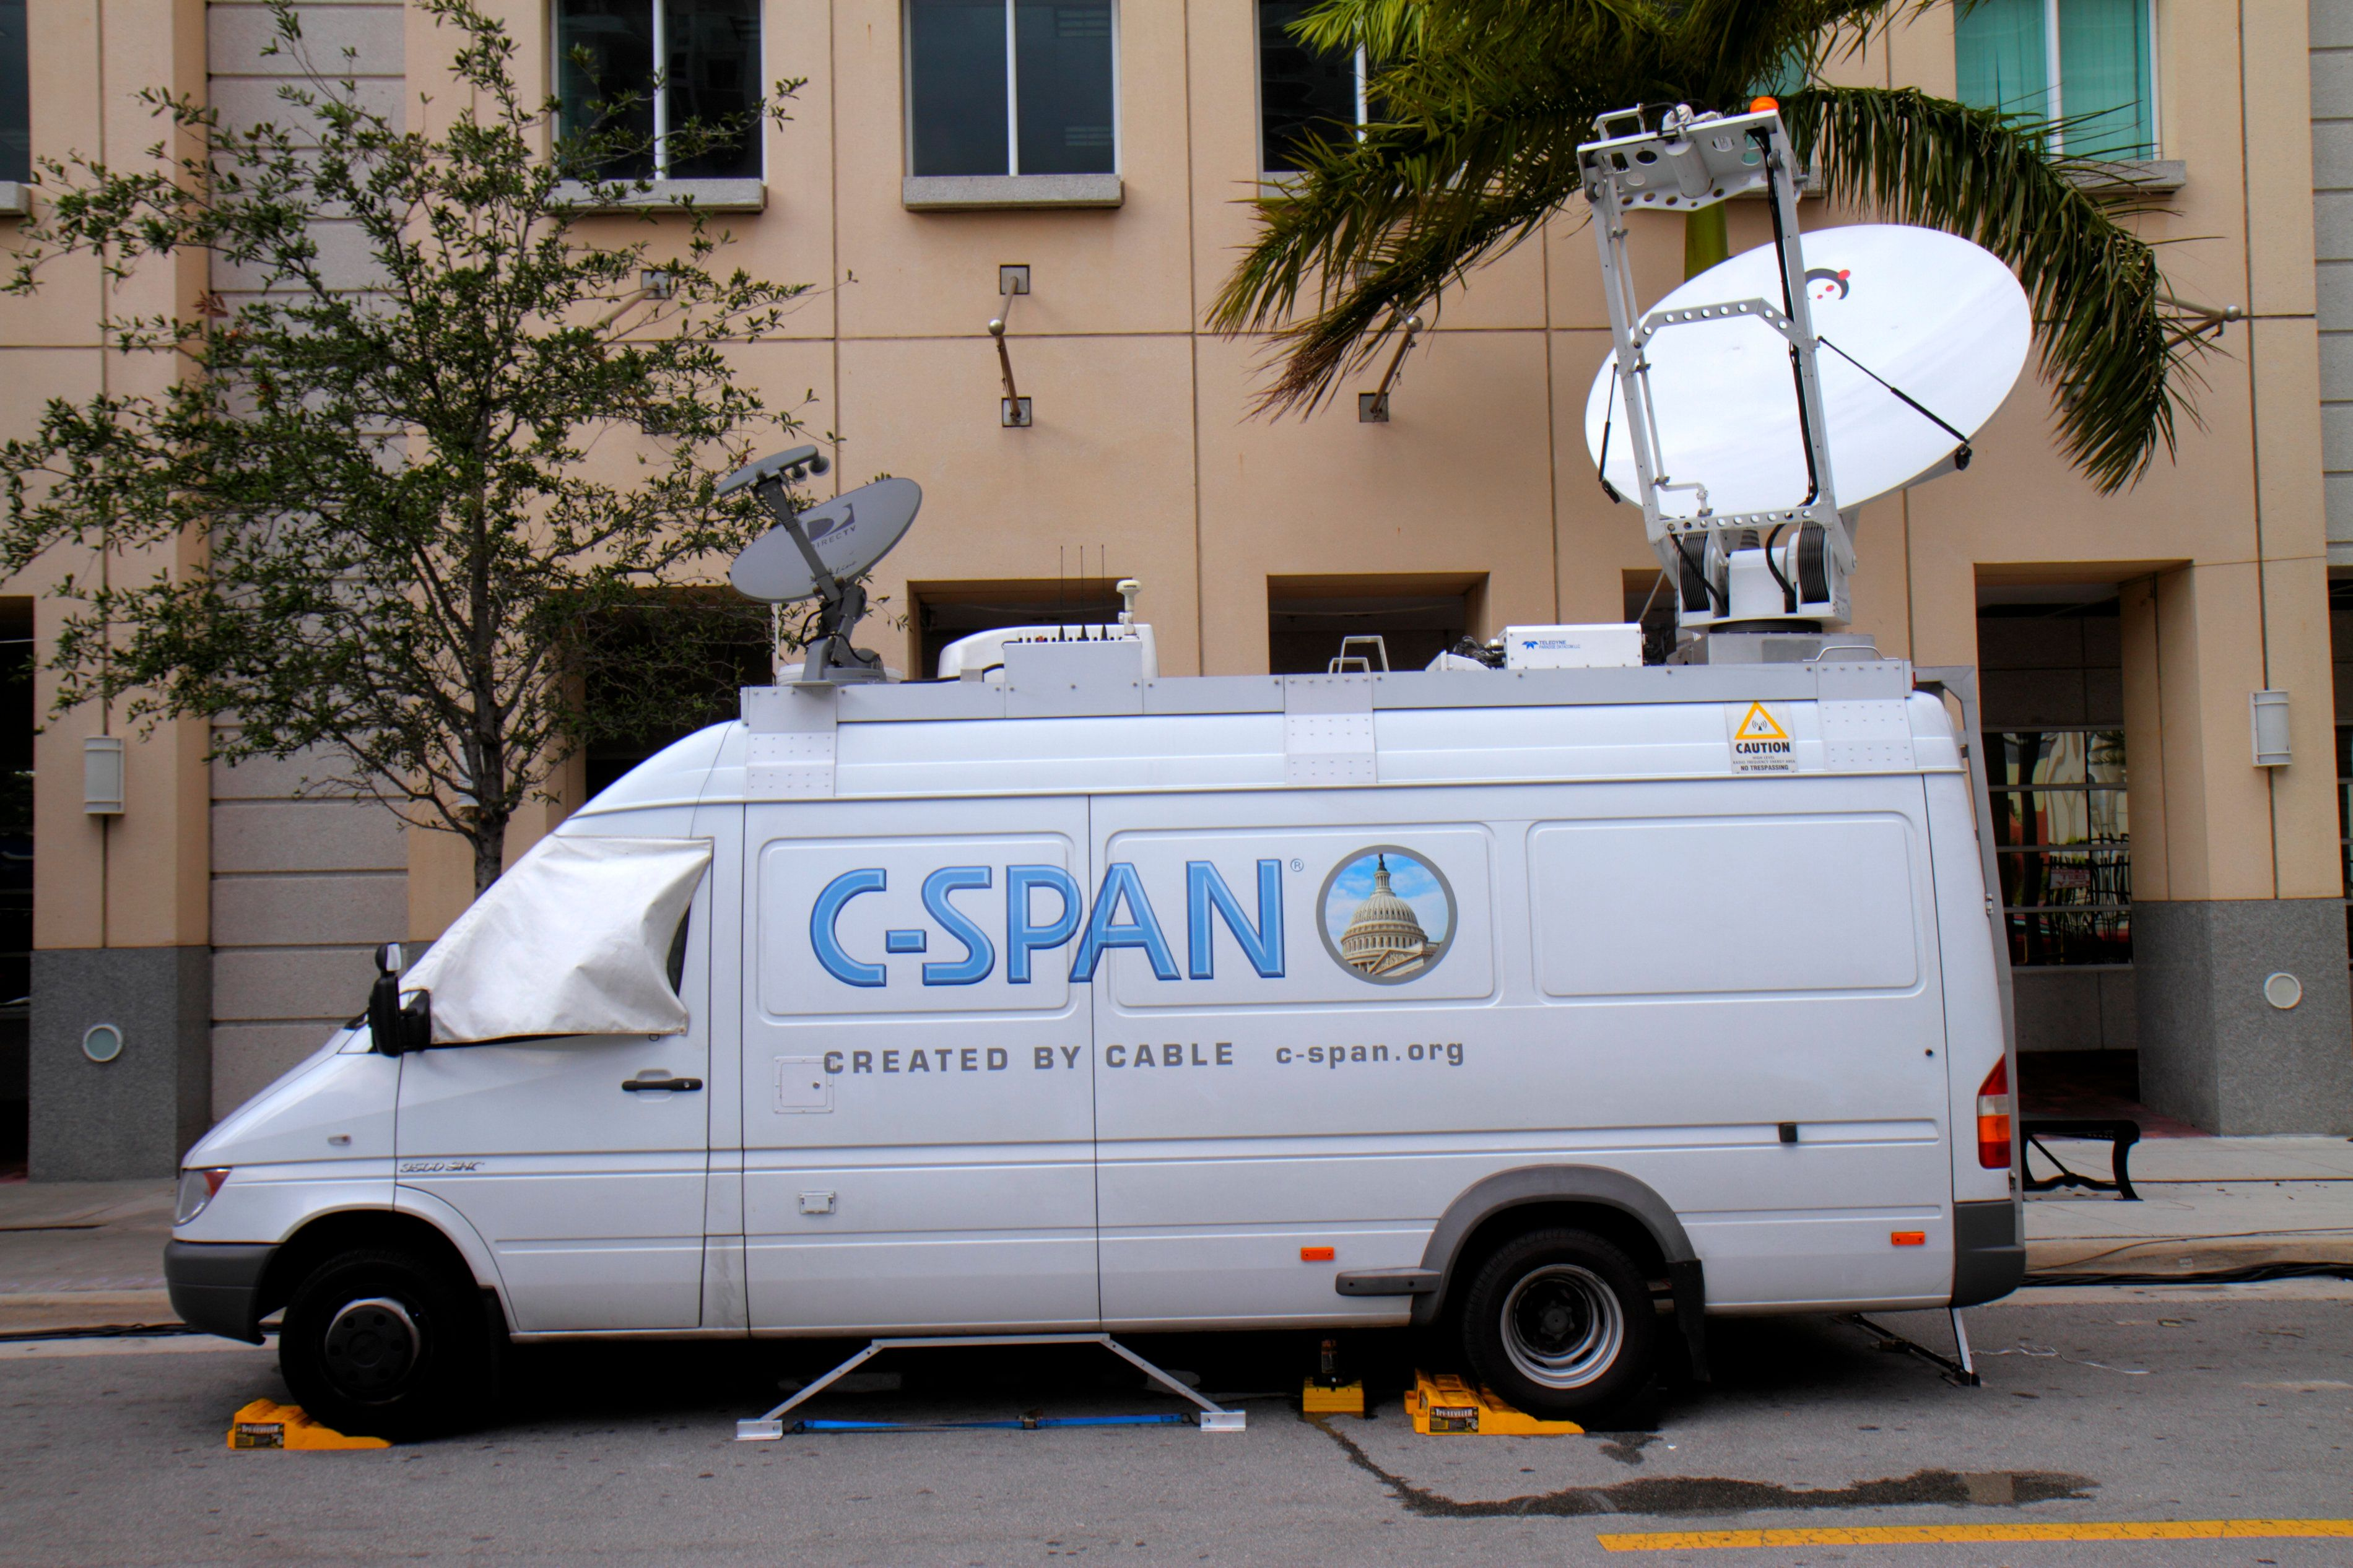 A C-Span mobile transmitter van. (Photo by: Jeff Greenberg/UIG via Getty Images)